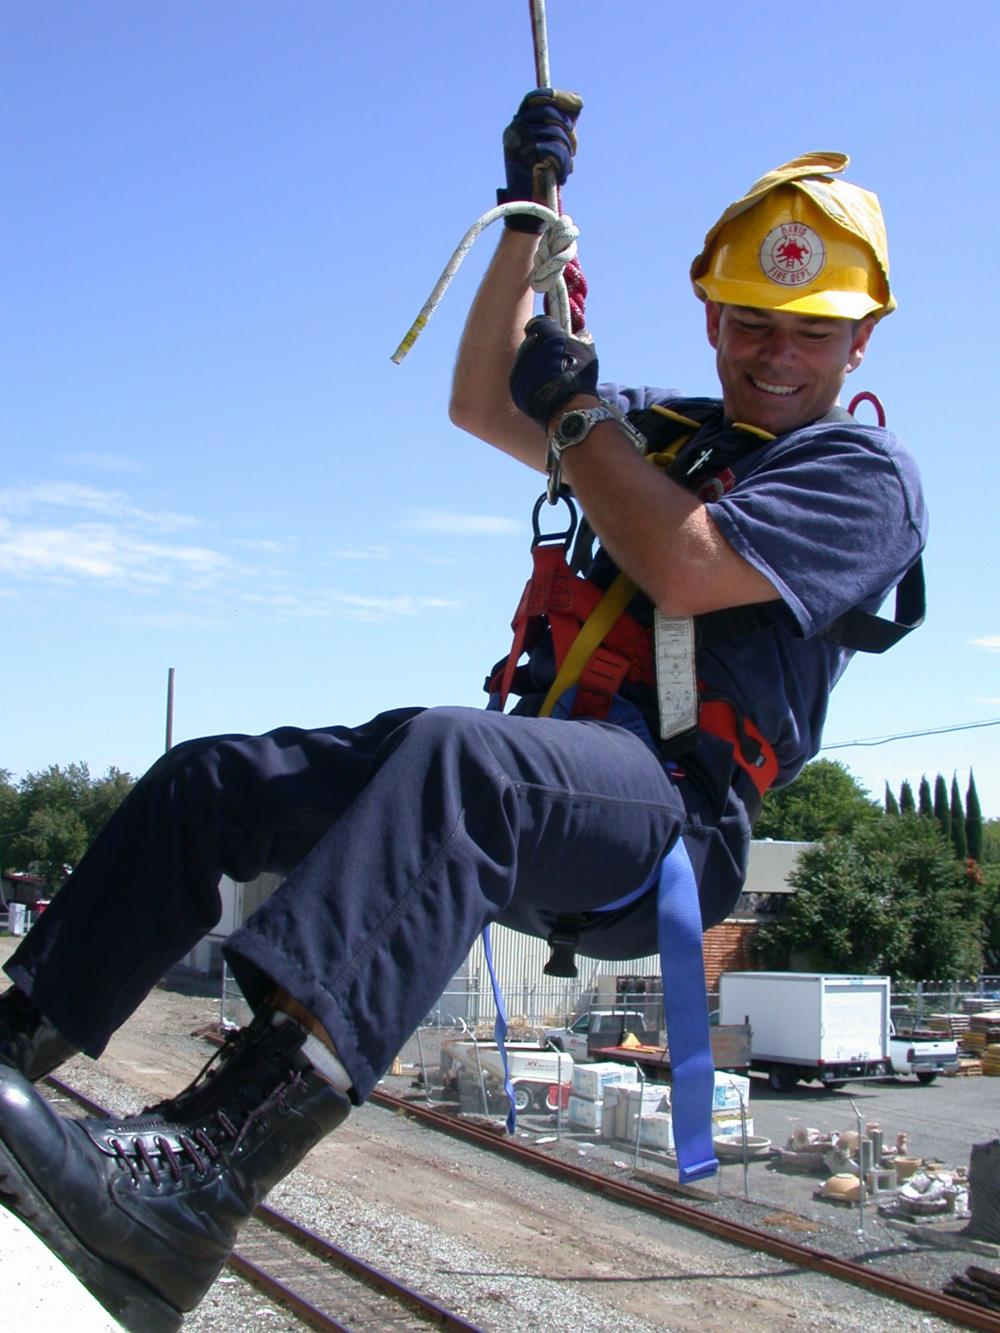 Firefighter Repelling